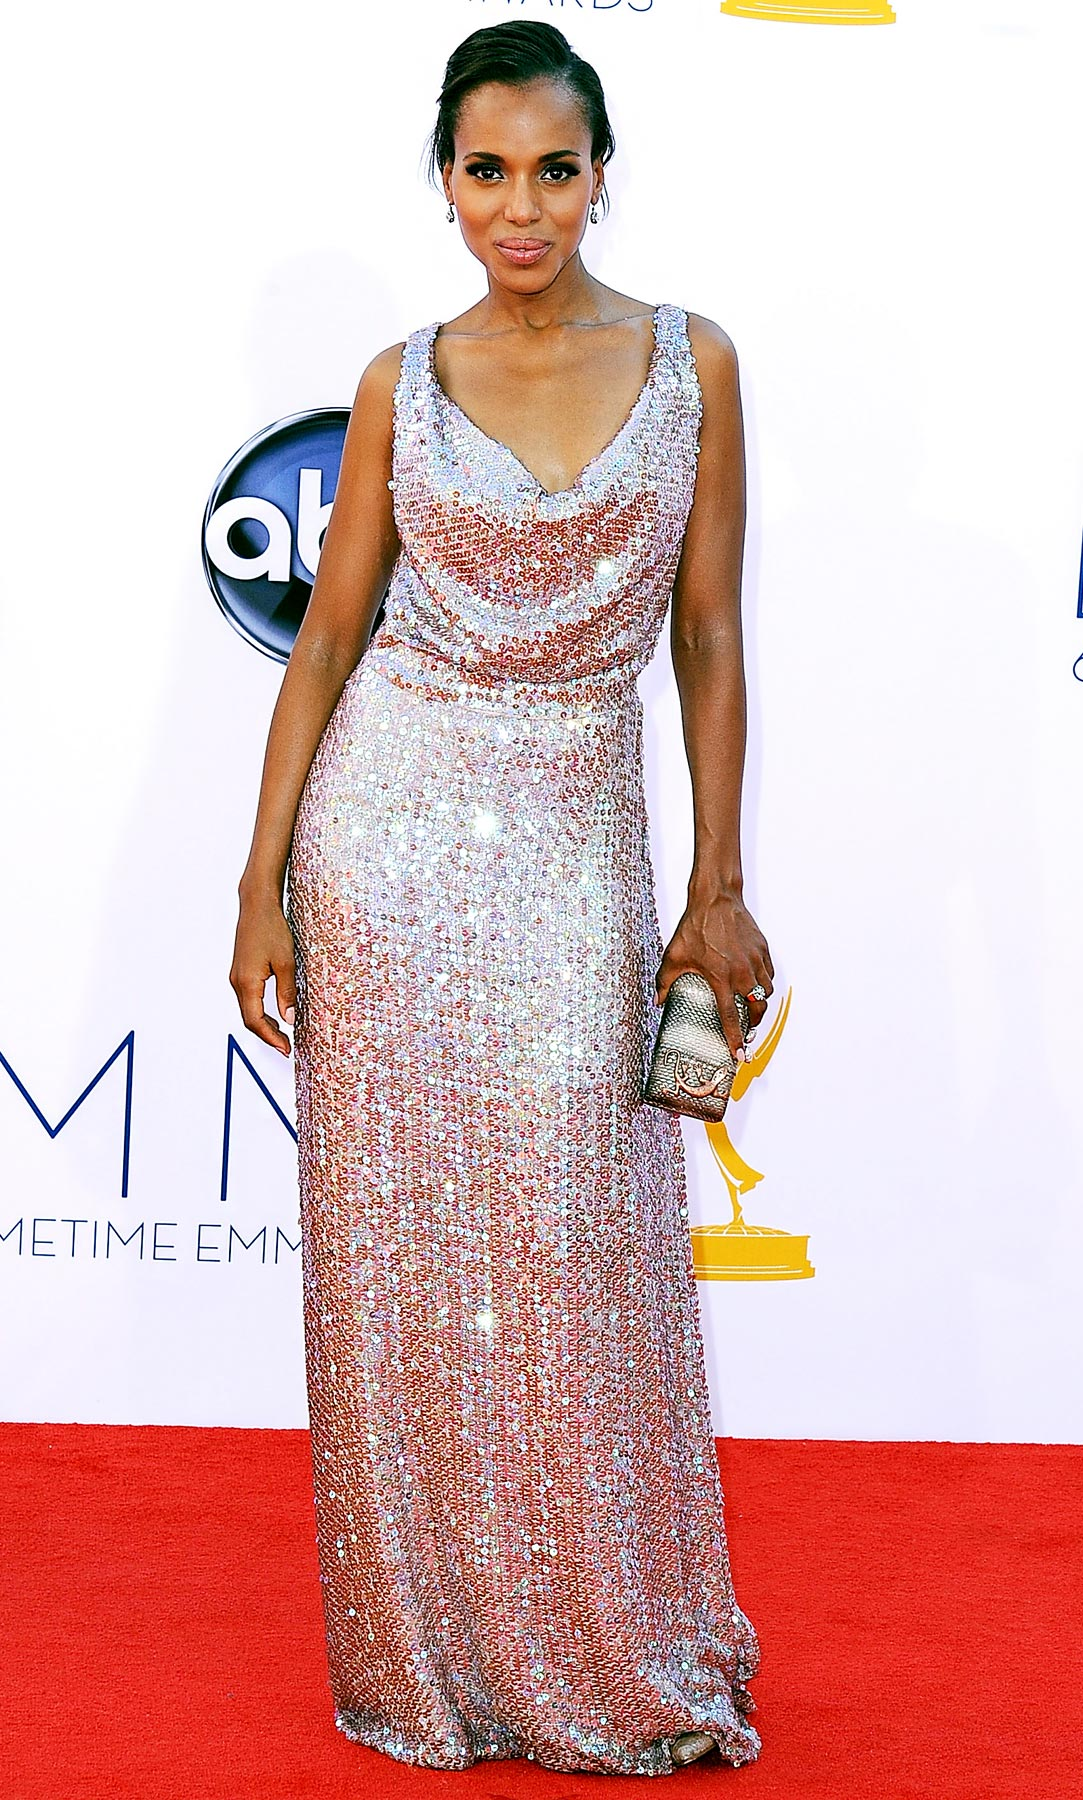 At L.A.'s Nokia Theatre for the 2012 Emmys, the Scandal star shimmered in a rose-gold sequined gown by Vivienne Westwood.